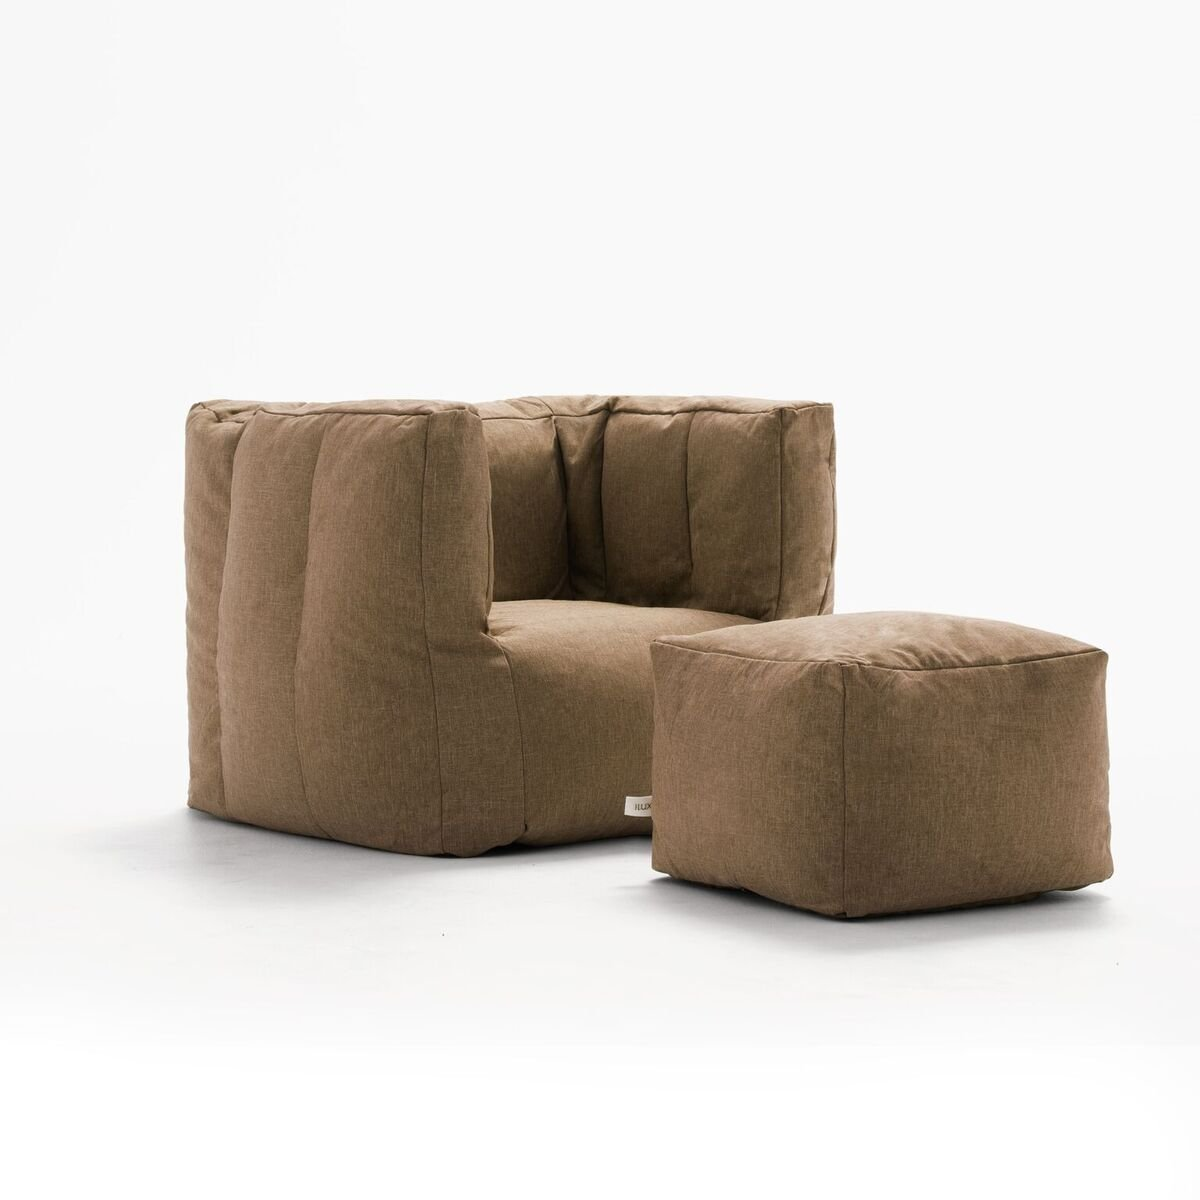 Incredible Big Joe Lux Cube Ottoman In Union Pecan Alphanode Cool Chair Designs And Ideas Alphanodeonline